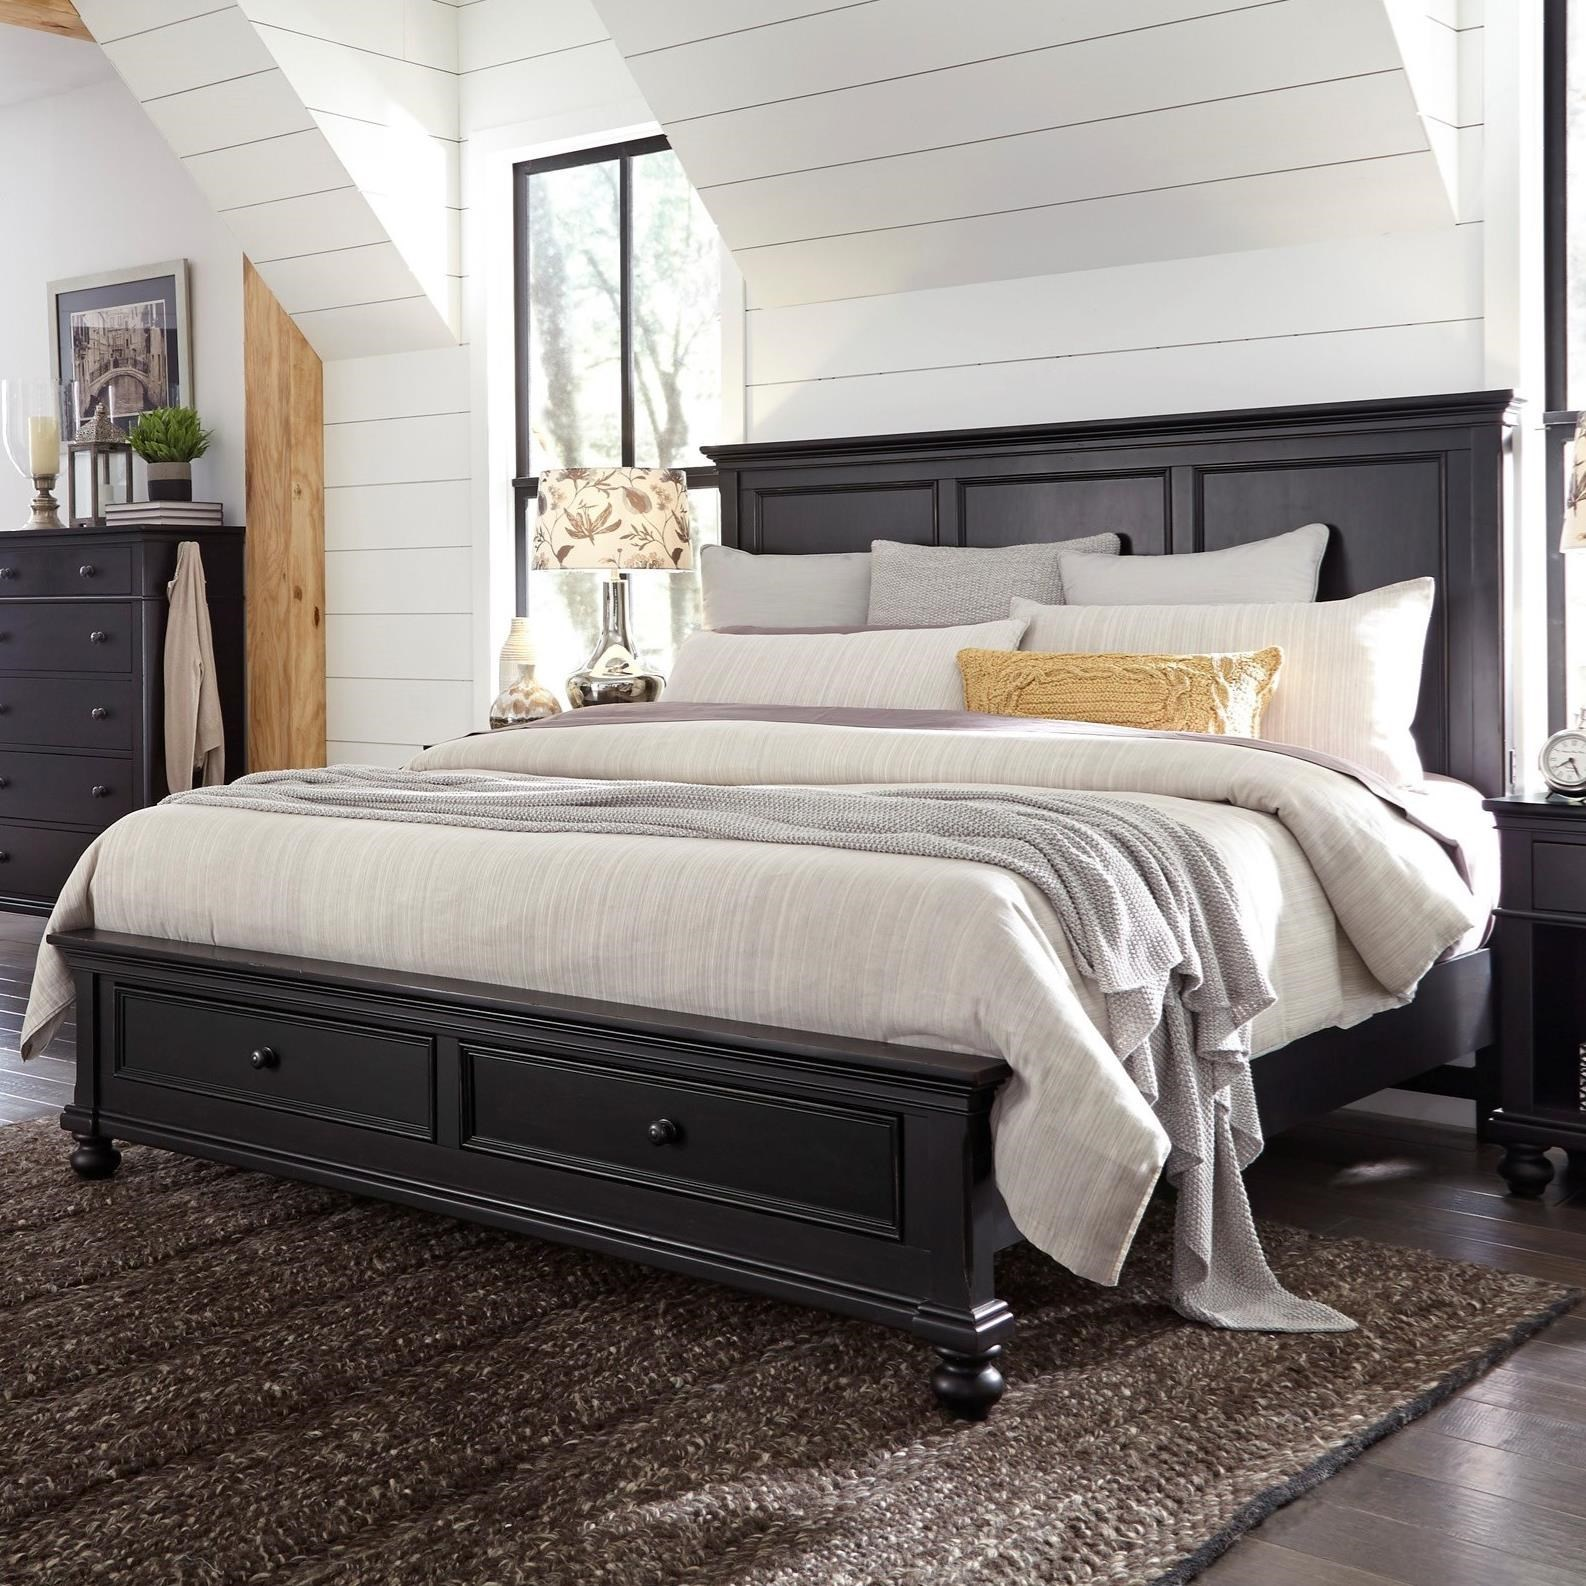 Highland Court OakfordOakford King Panel Storage Bed ...  sc 1 st  Morris Furniture & Highland Court Oakford Transitional King Panel Storage Bed with USB ...